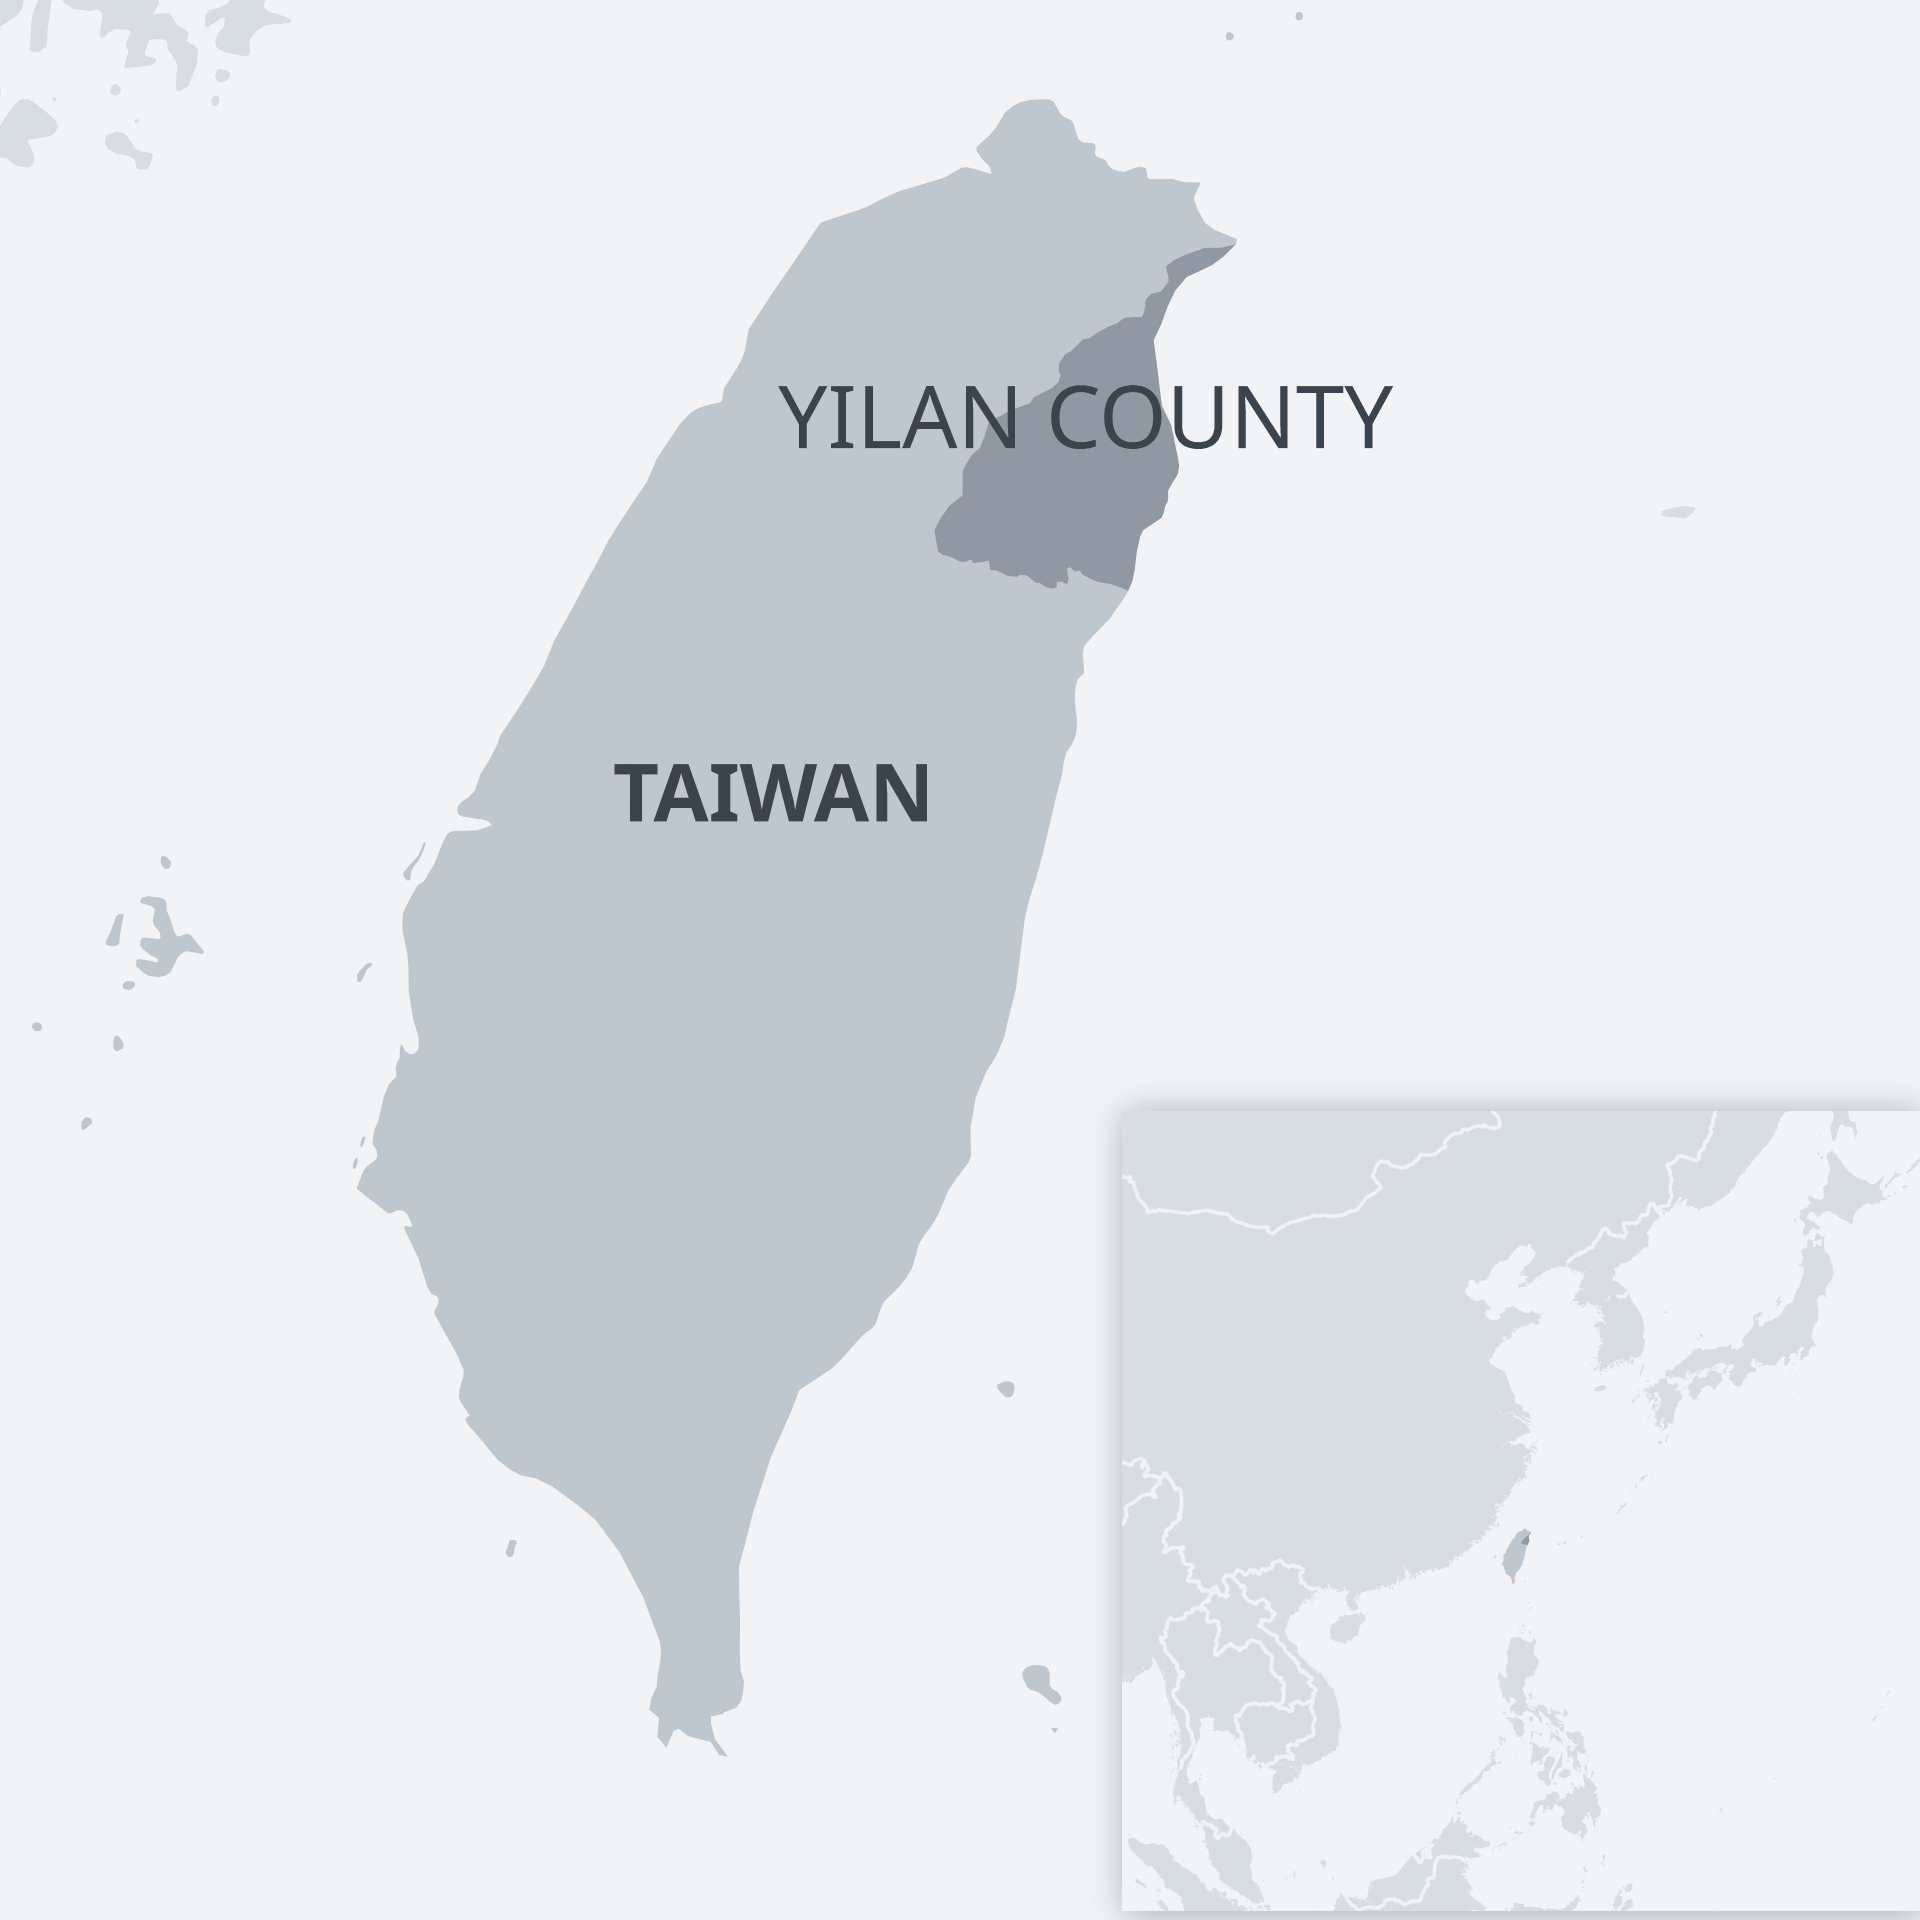 Taiwan train accident leaves several dead, many injured ...